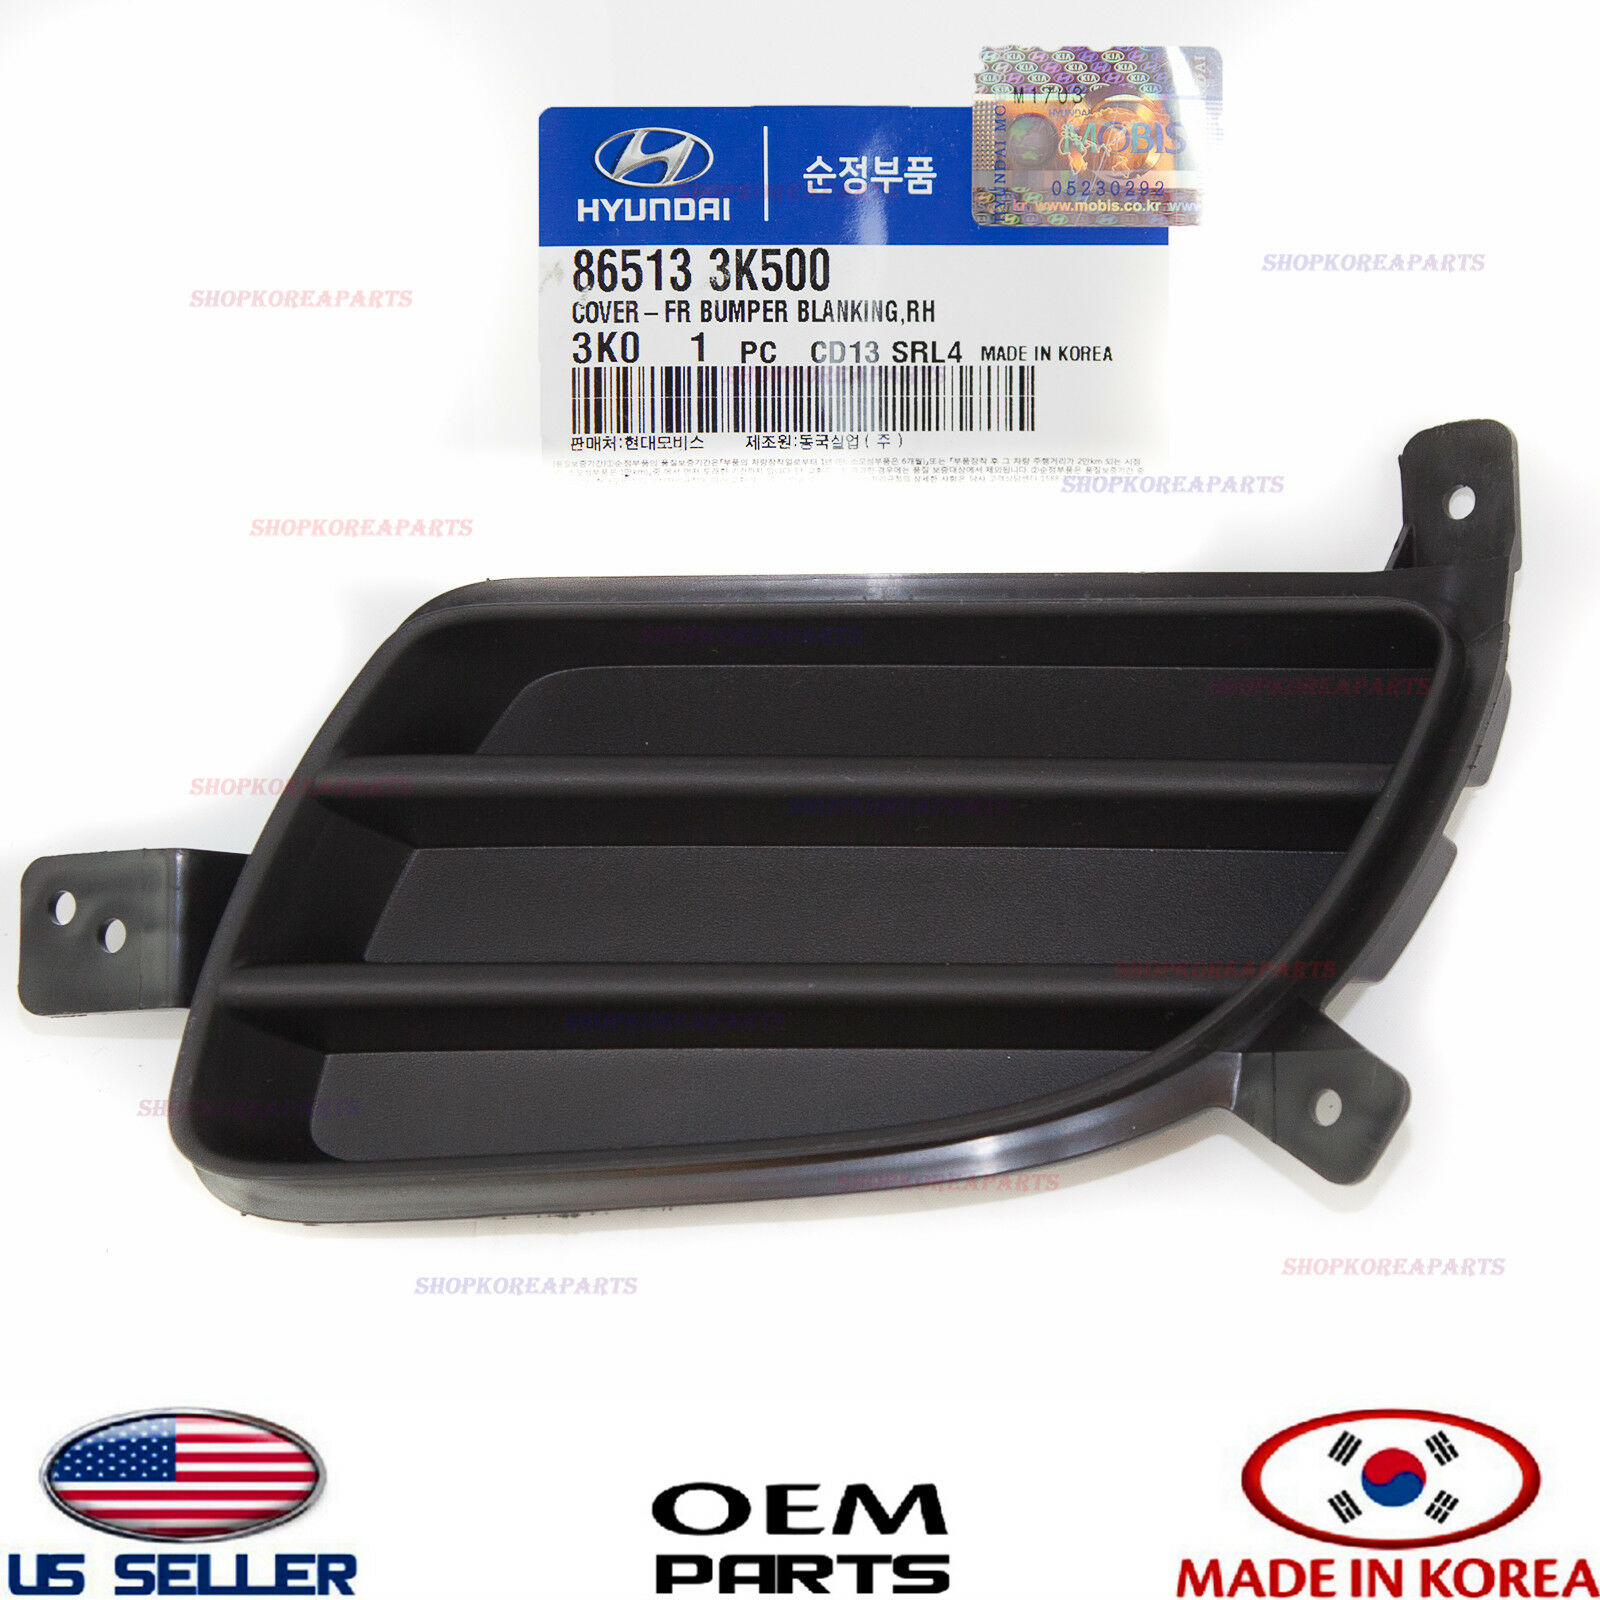 DAT AUTO PARTS DRIVER SIDE FRONT FOG HOLE COVER REPLACEMENT FOR 2011-2013 HYUNDAI SONATA HY1038110 865233S000